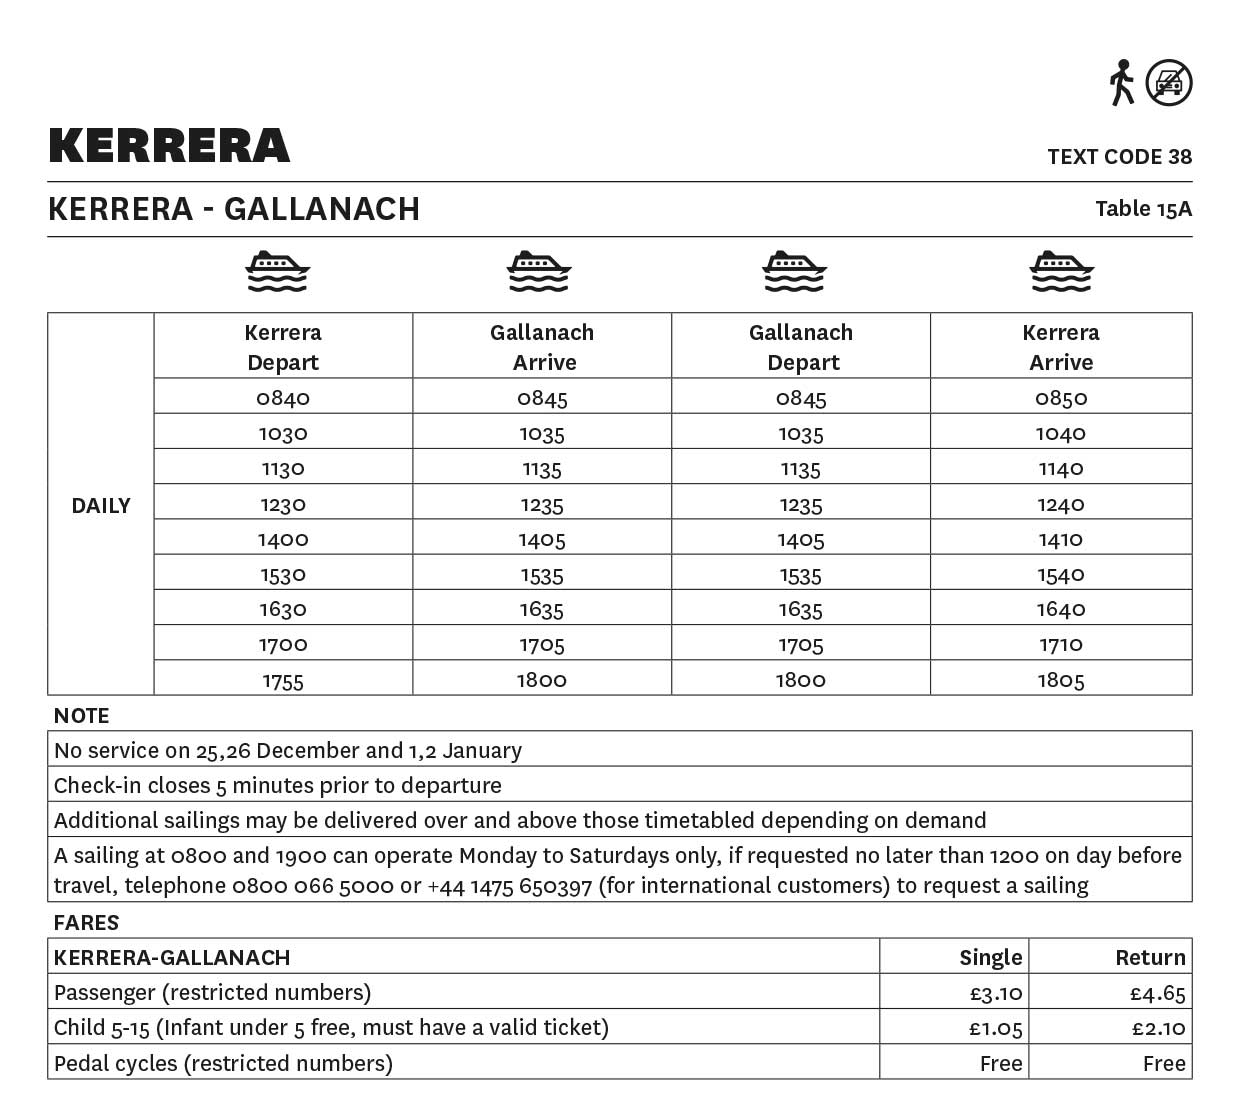 Table 15A Gallanach - Kerrera Winter 2018 This image is currently not accessible to screen readers. Please phone 0800 066 5000 for timetable details